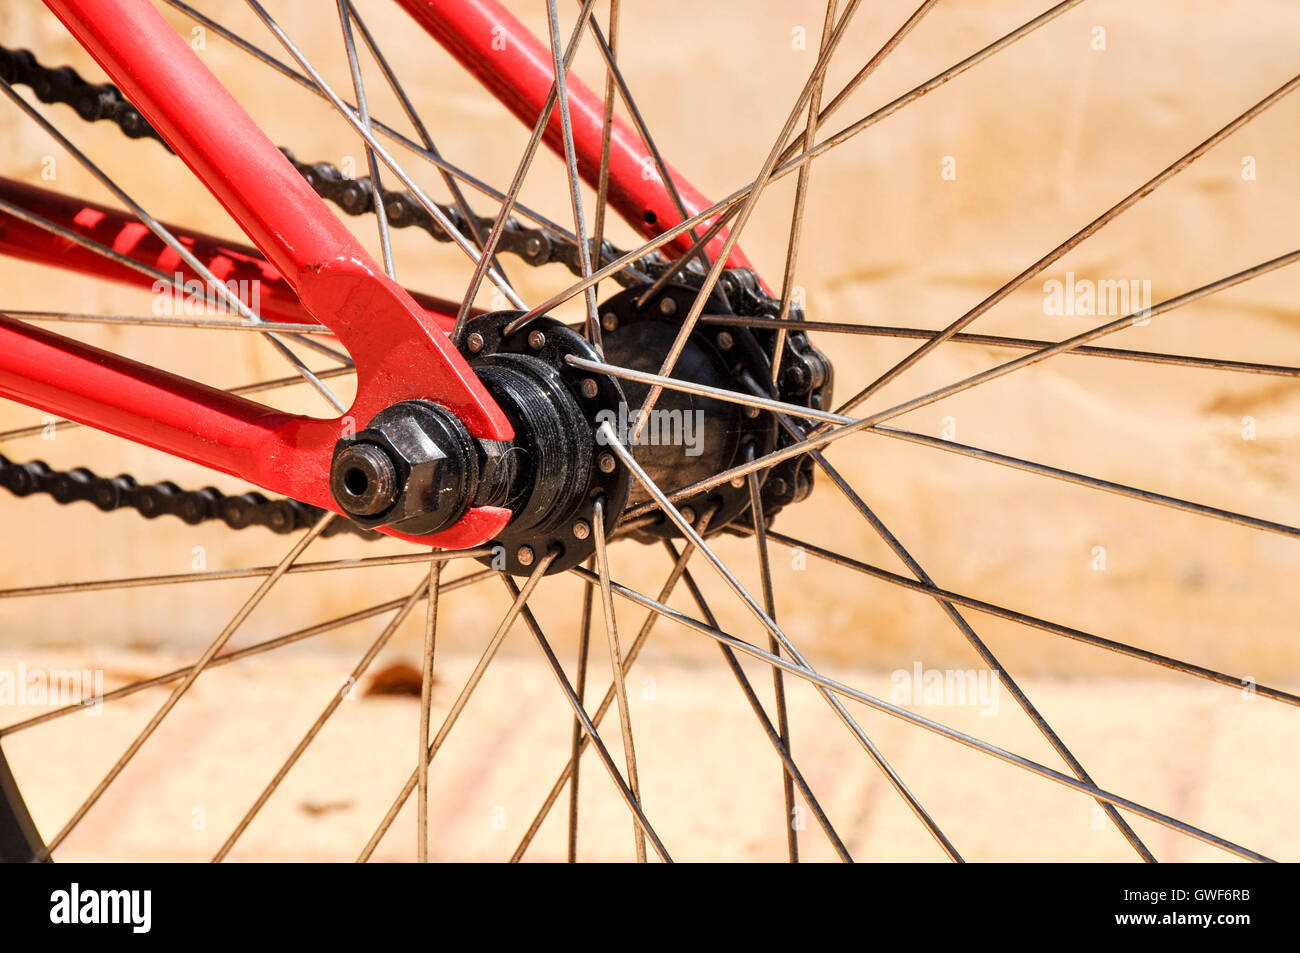 Abstract closeup of the red metal of bicycle frame with radiating spokes with a blurred background in outdoor setting. - Stock Image